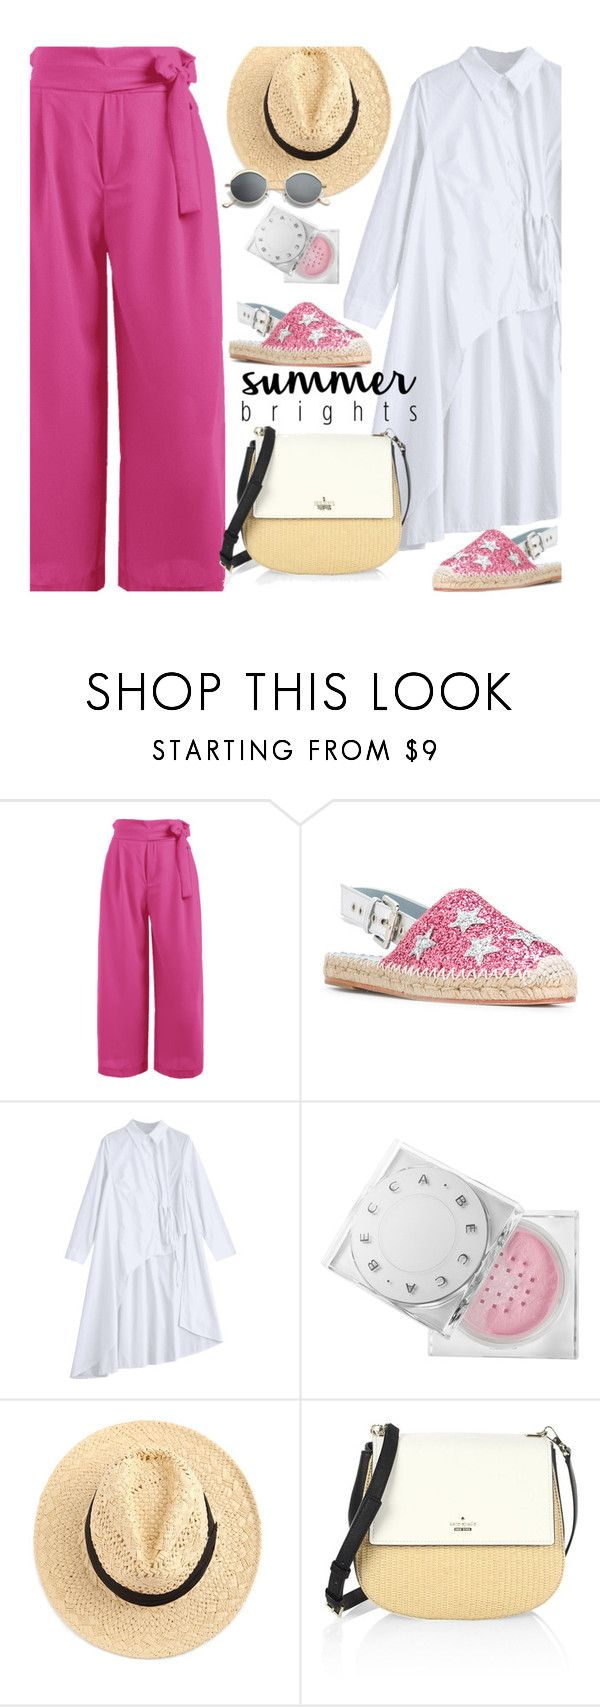 """Summer Brights"" by beebeely-look ❤ liked on Polyvore featuring Chiara Ferragni, Kate Spade, casual, summerstyle, espadrilles, zaful and summerdatenight"